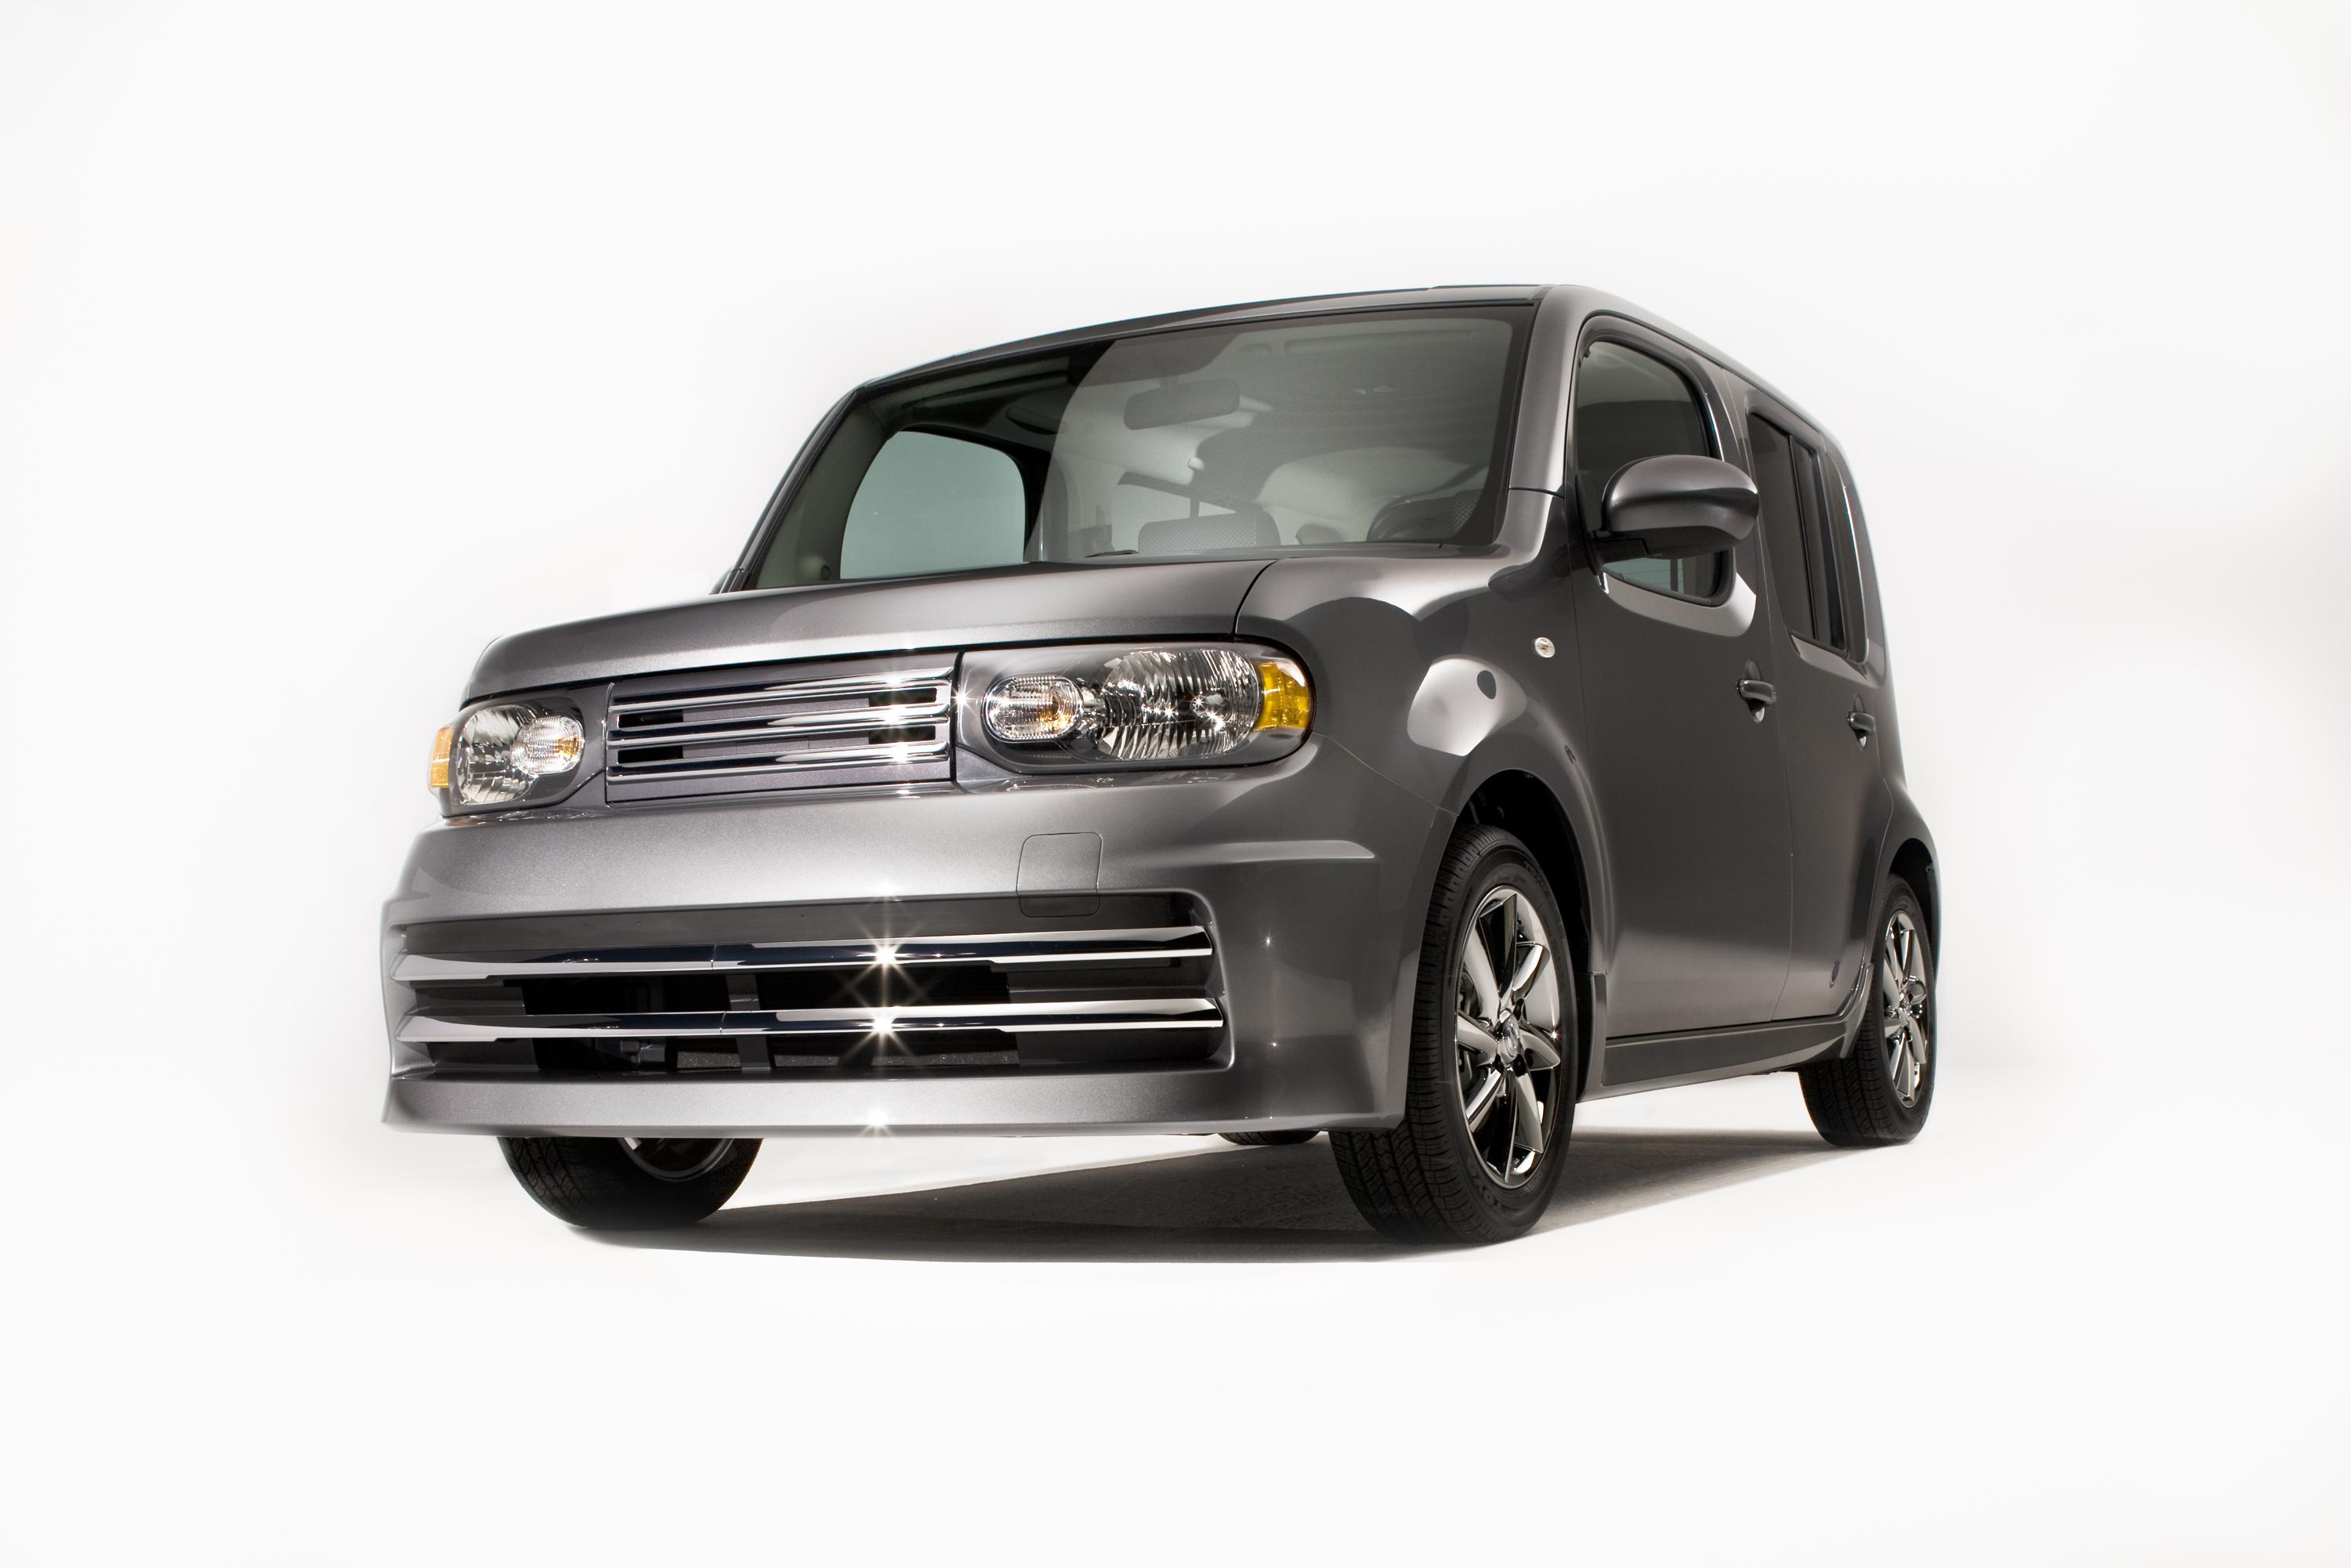 2010 nissan cube krom review gallery top speed nissan announced today a new special version for the compact model cube krom the new version comes with exclusive exterior and interior treatments vanachro Choice Image